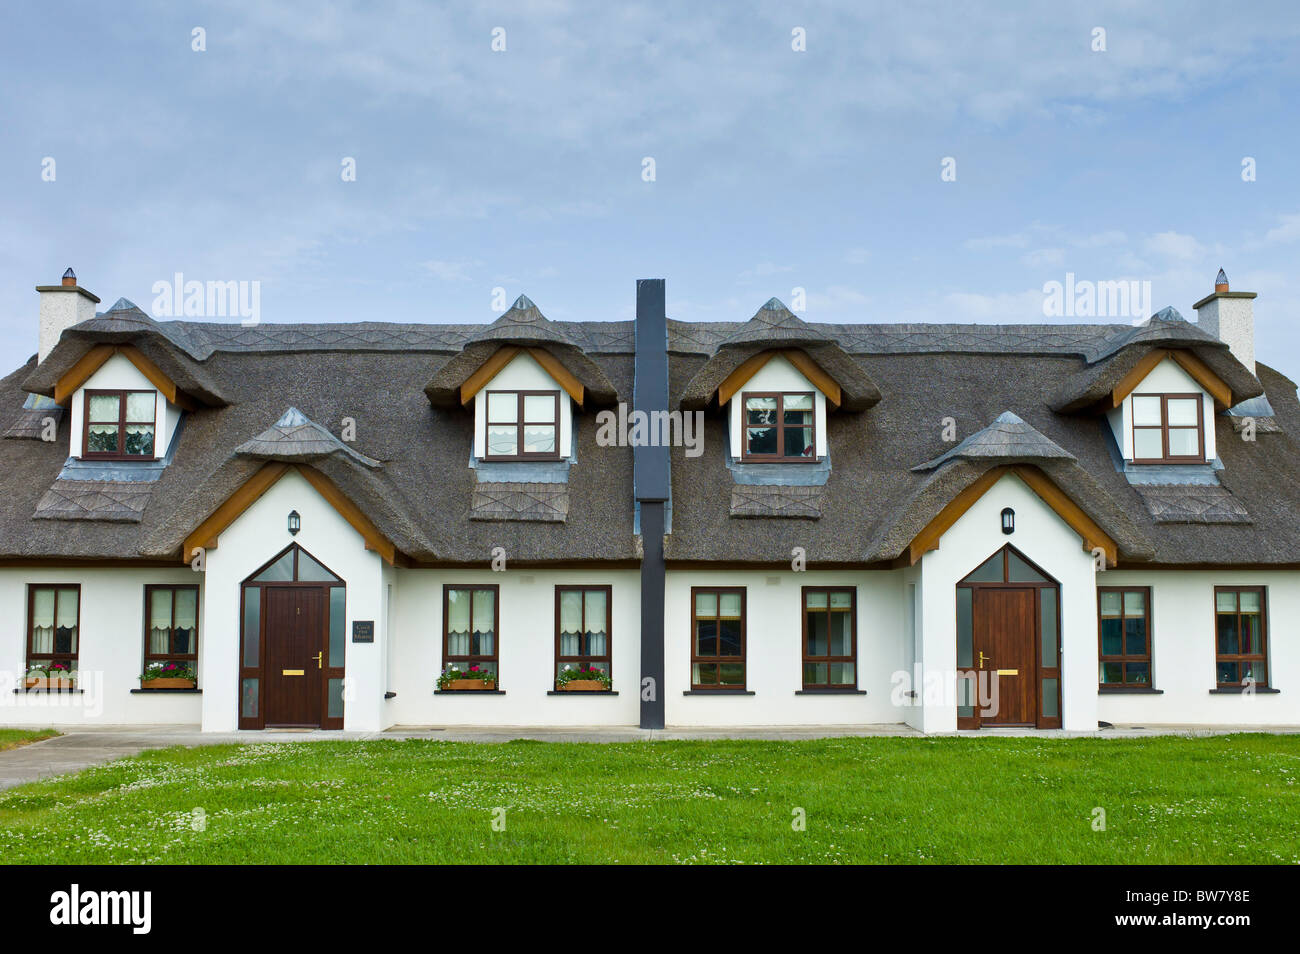 Repro thatched cottages in new development in County Wexford, Ireland. EU funds led to 'Celtic tiger' investment - Stock Image